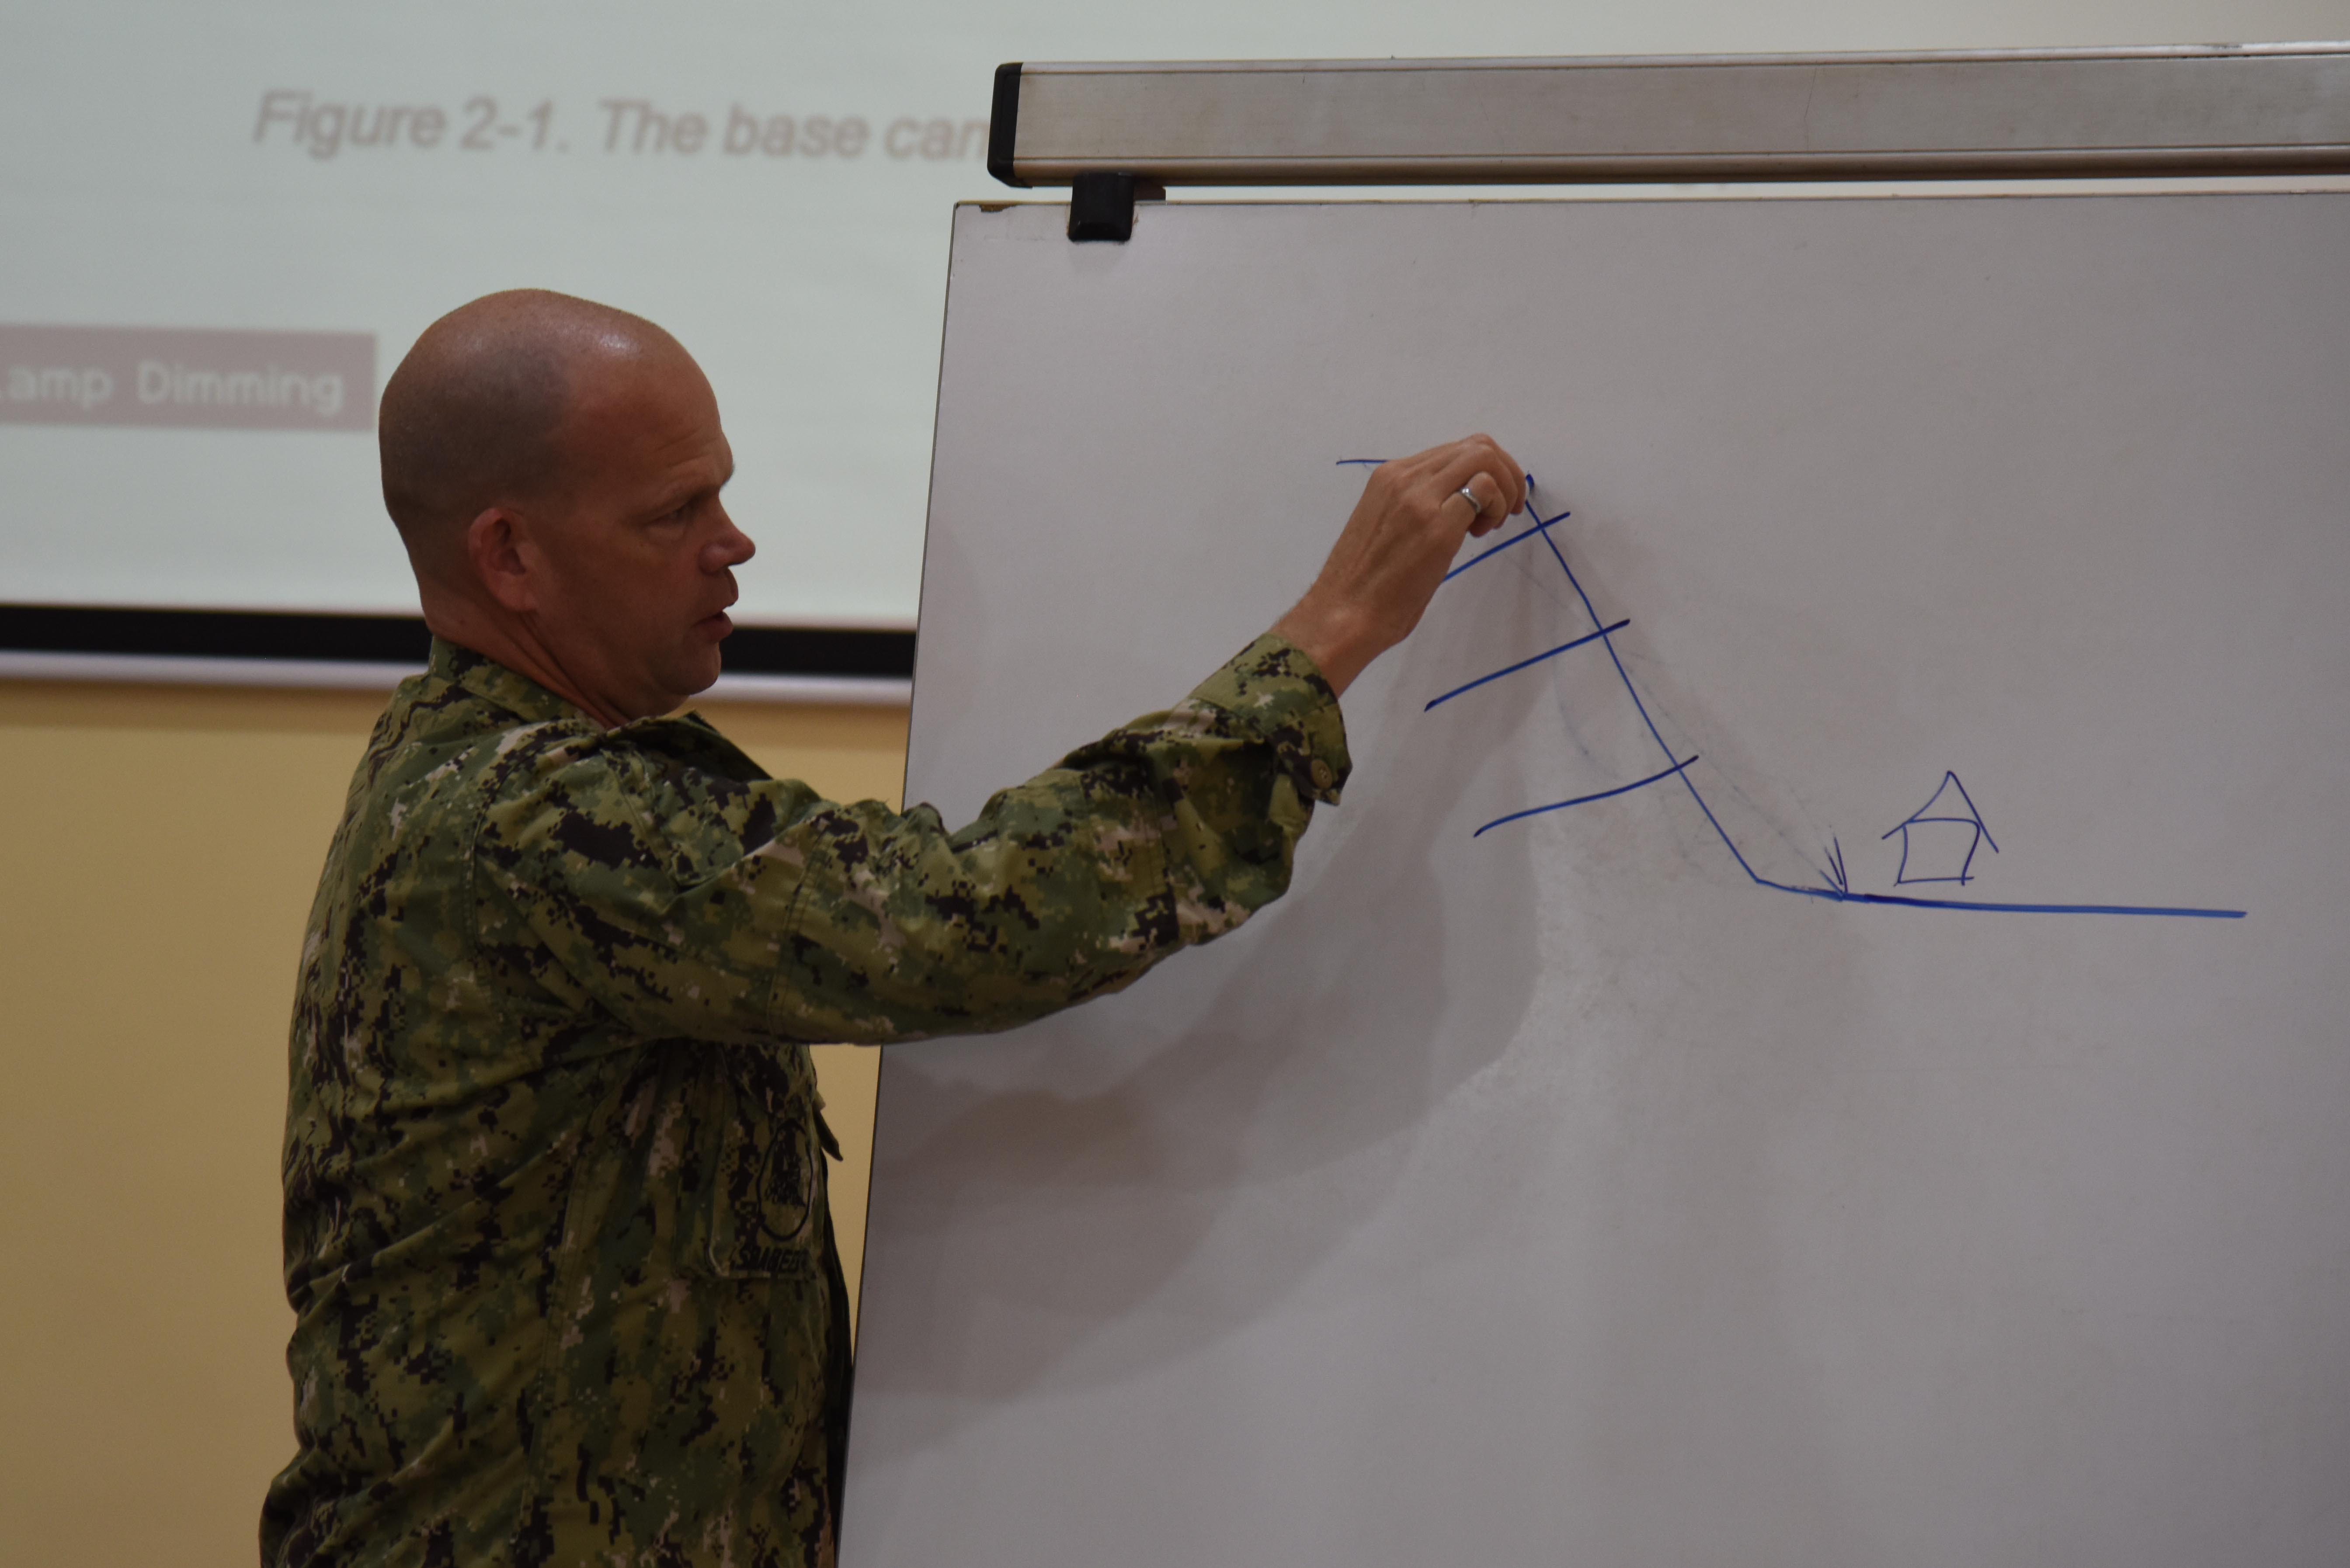 U.S. Navy Lt. Steven Hunt, Combined Joint Task Force–Horn of Africa engineer, illustrates soil stabilization techniques during a military-to-military engagement with the Rwandan Defense Force at the RDF Engineering Brigade Headquarters near Kigali, Rwanda, Dec. 15, 2015. Engineers from both forces exchanged ideas on the optimal ways to plan expeditionary camps considering local terrain features. (U.S. Air Force photo by Staff Sgt. Victoria Sneed)